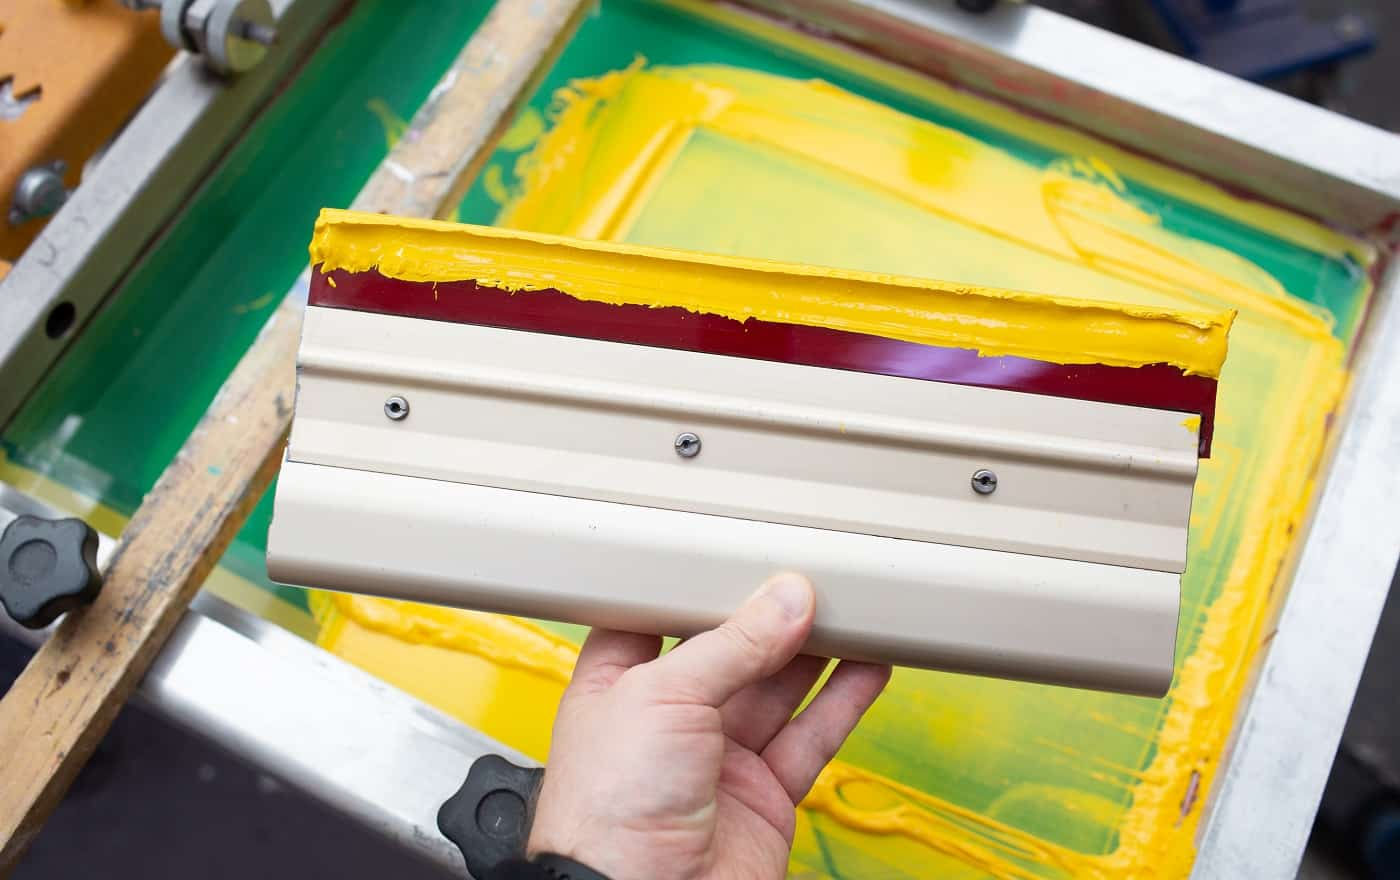 Squeegee for Serigraphy silk screen print process at clothes factory. Frame, squeegee and plastisol color paints.